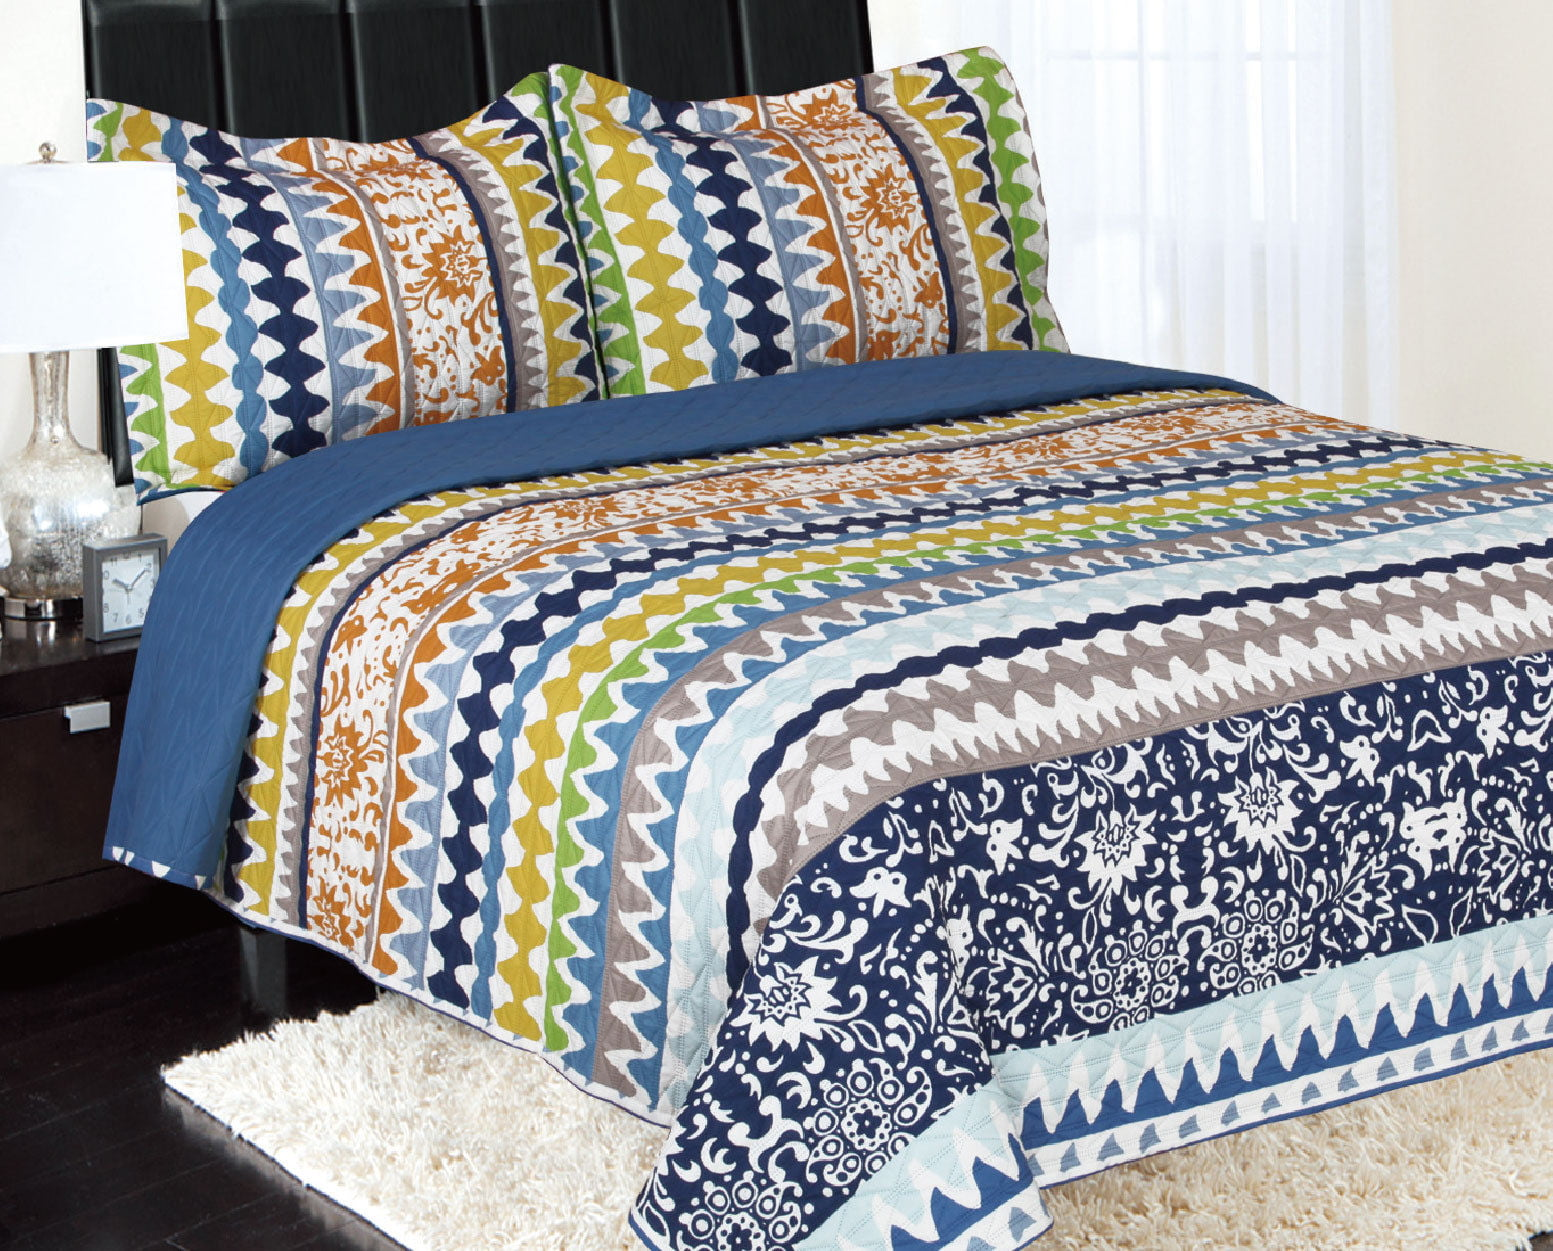 3-Piece Reversible Quilted Printed Bedspread Coverlet Blue Orange Green yellow Waves Queen... by